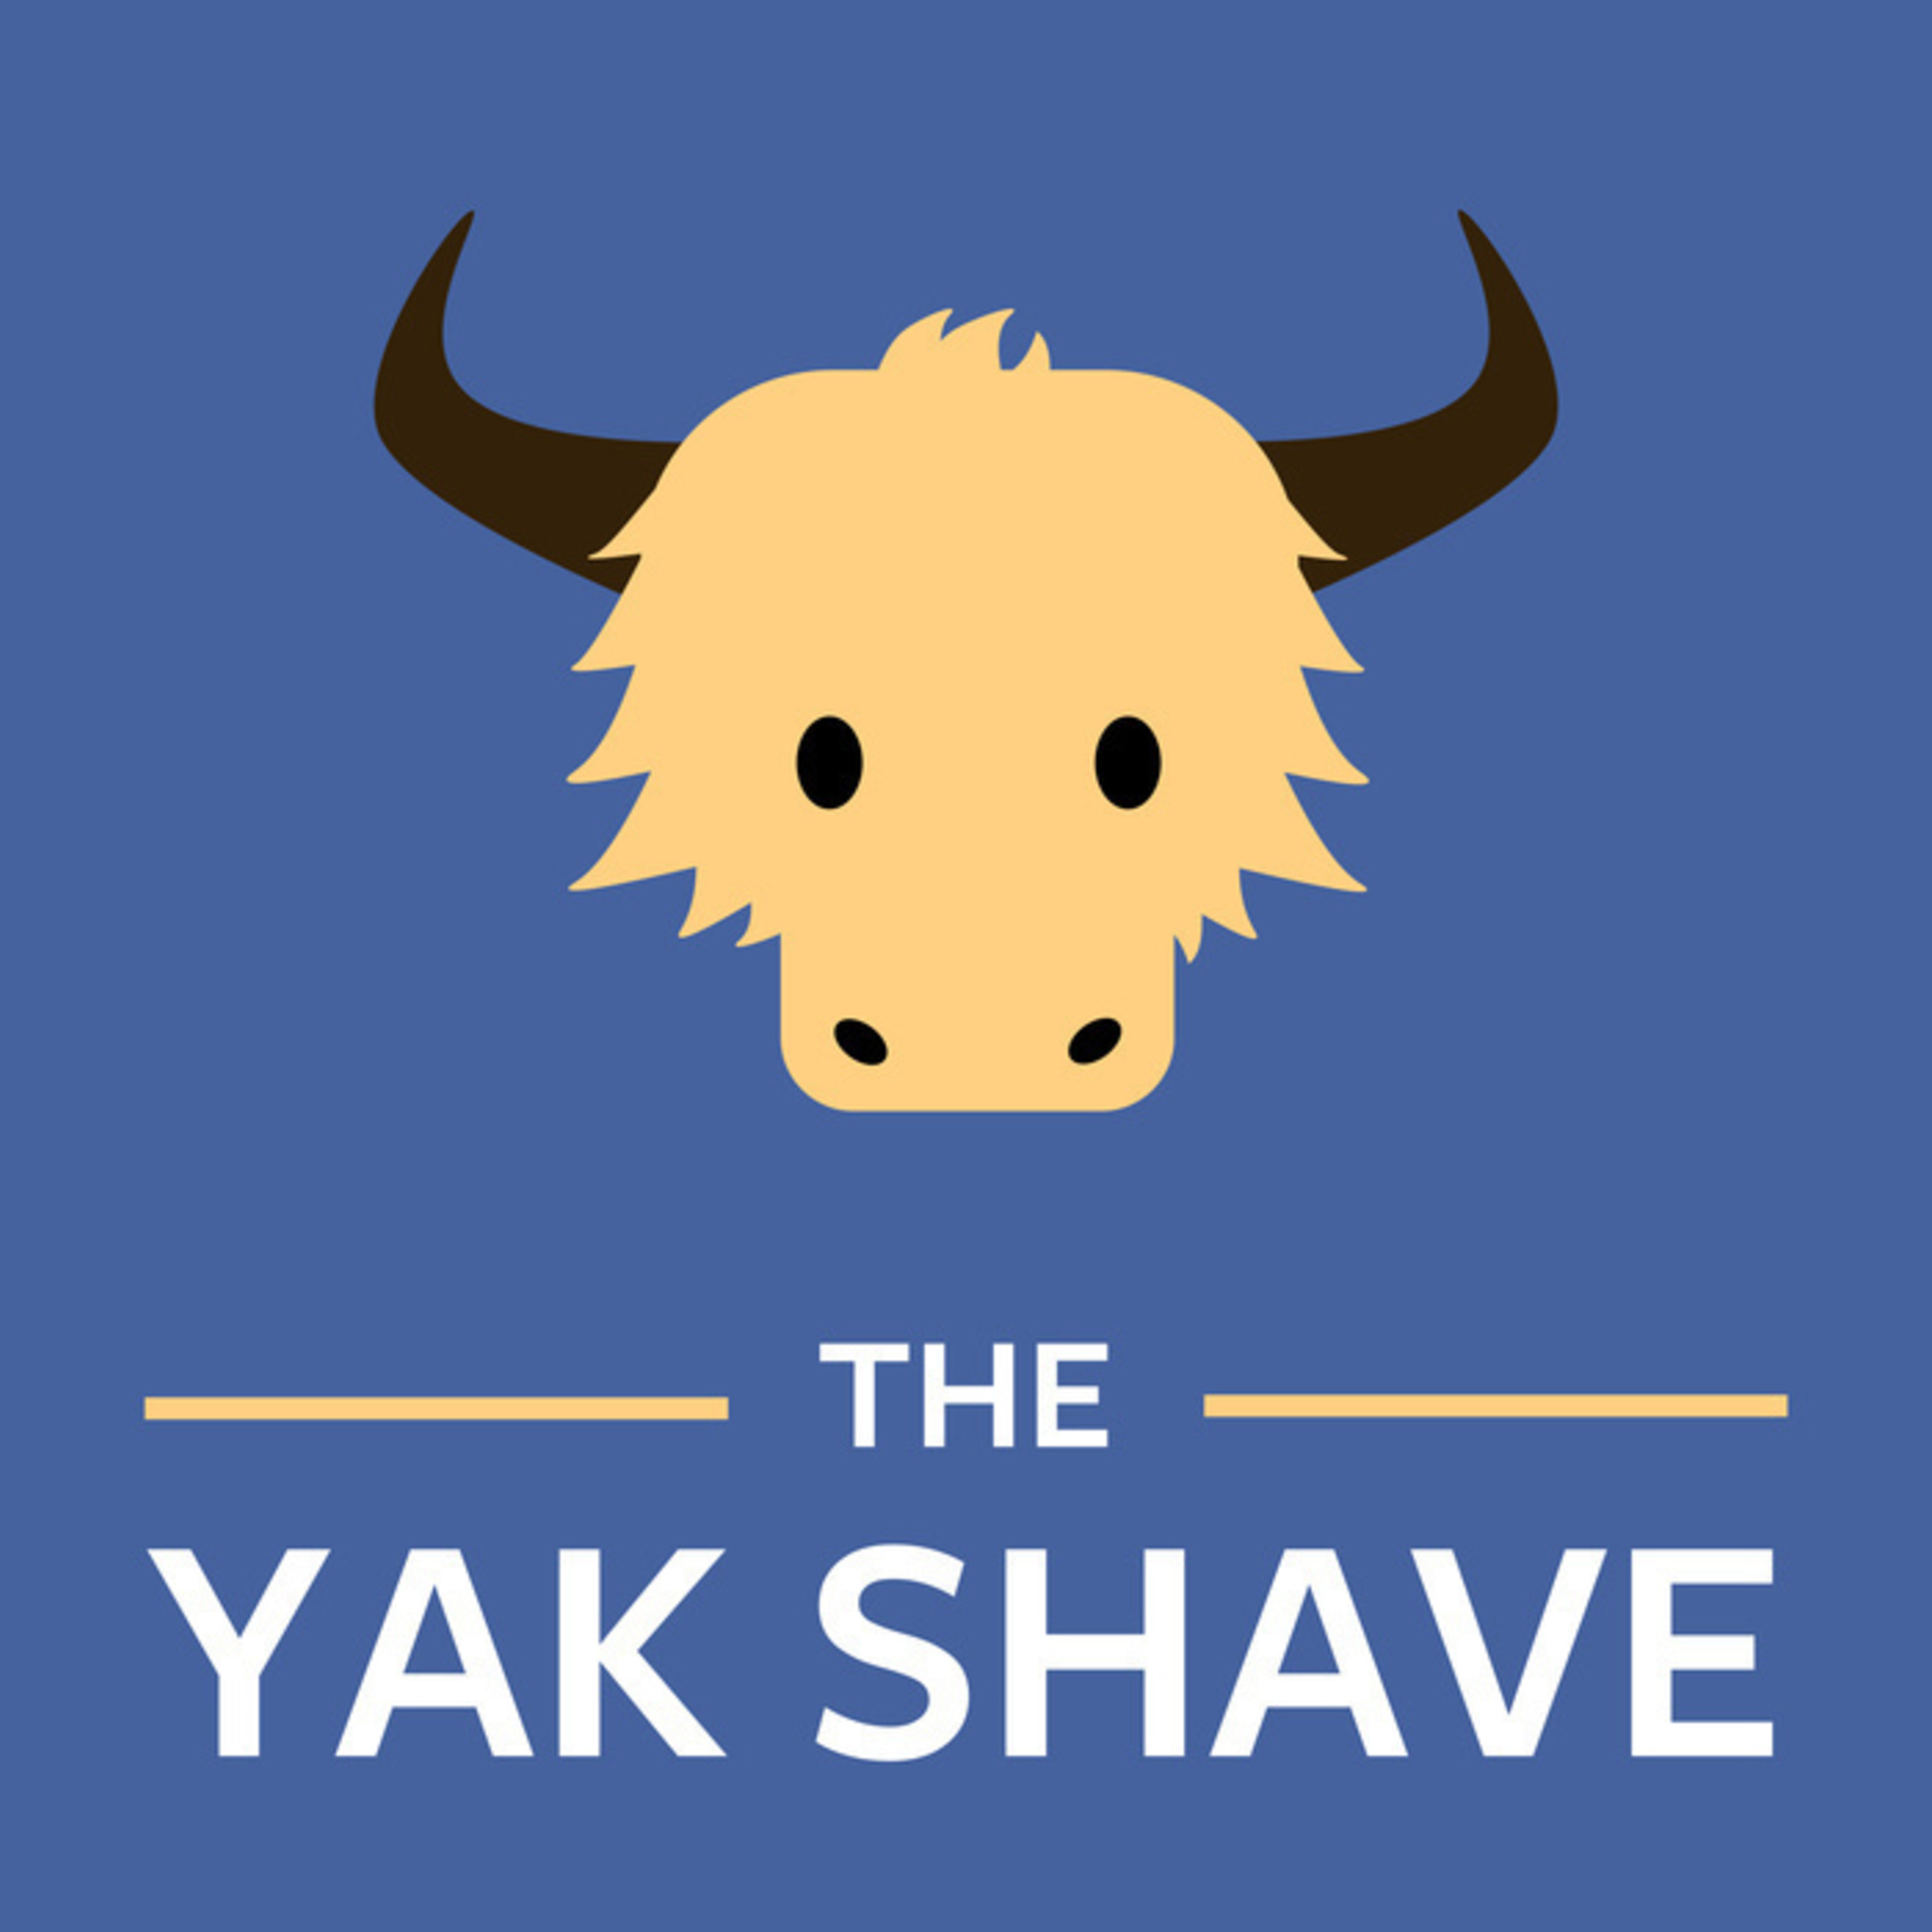 The Yak Shave